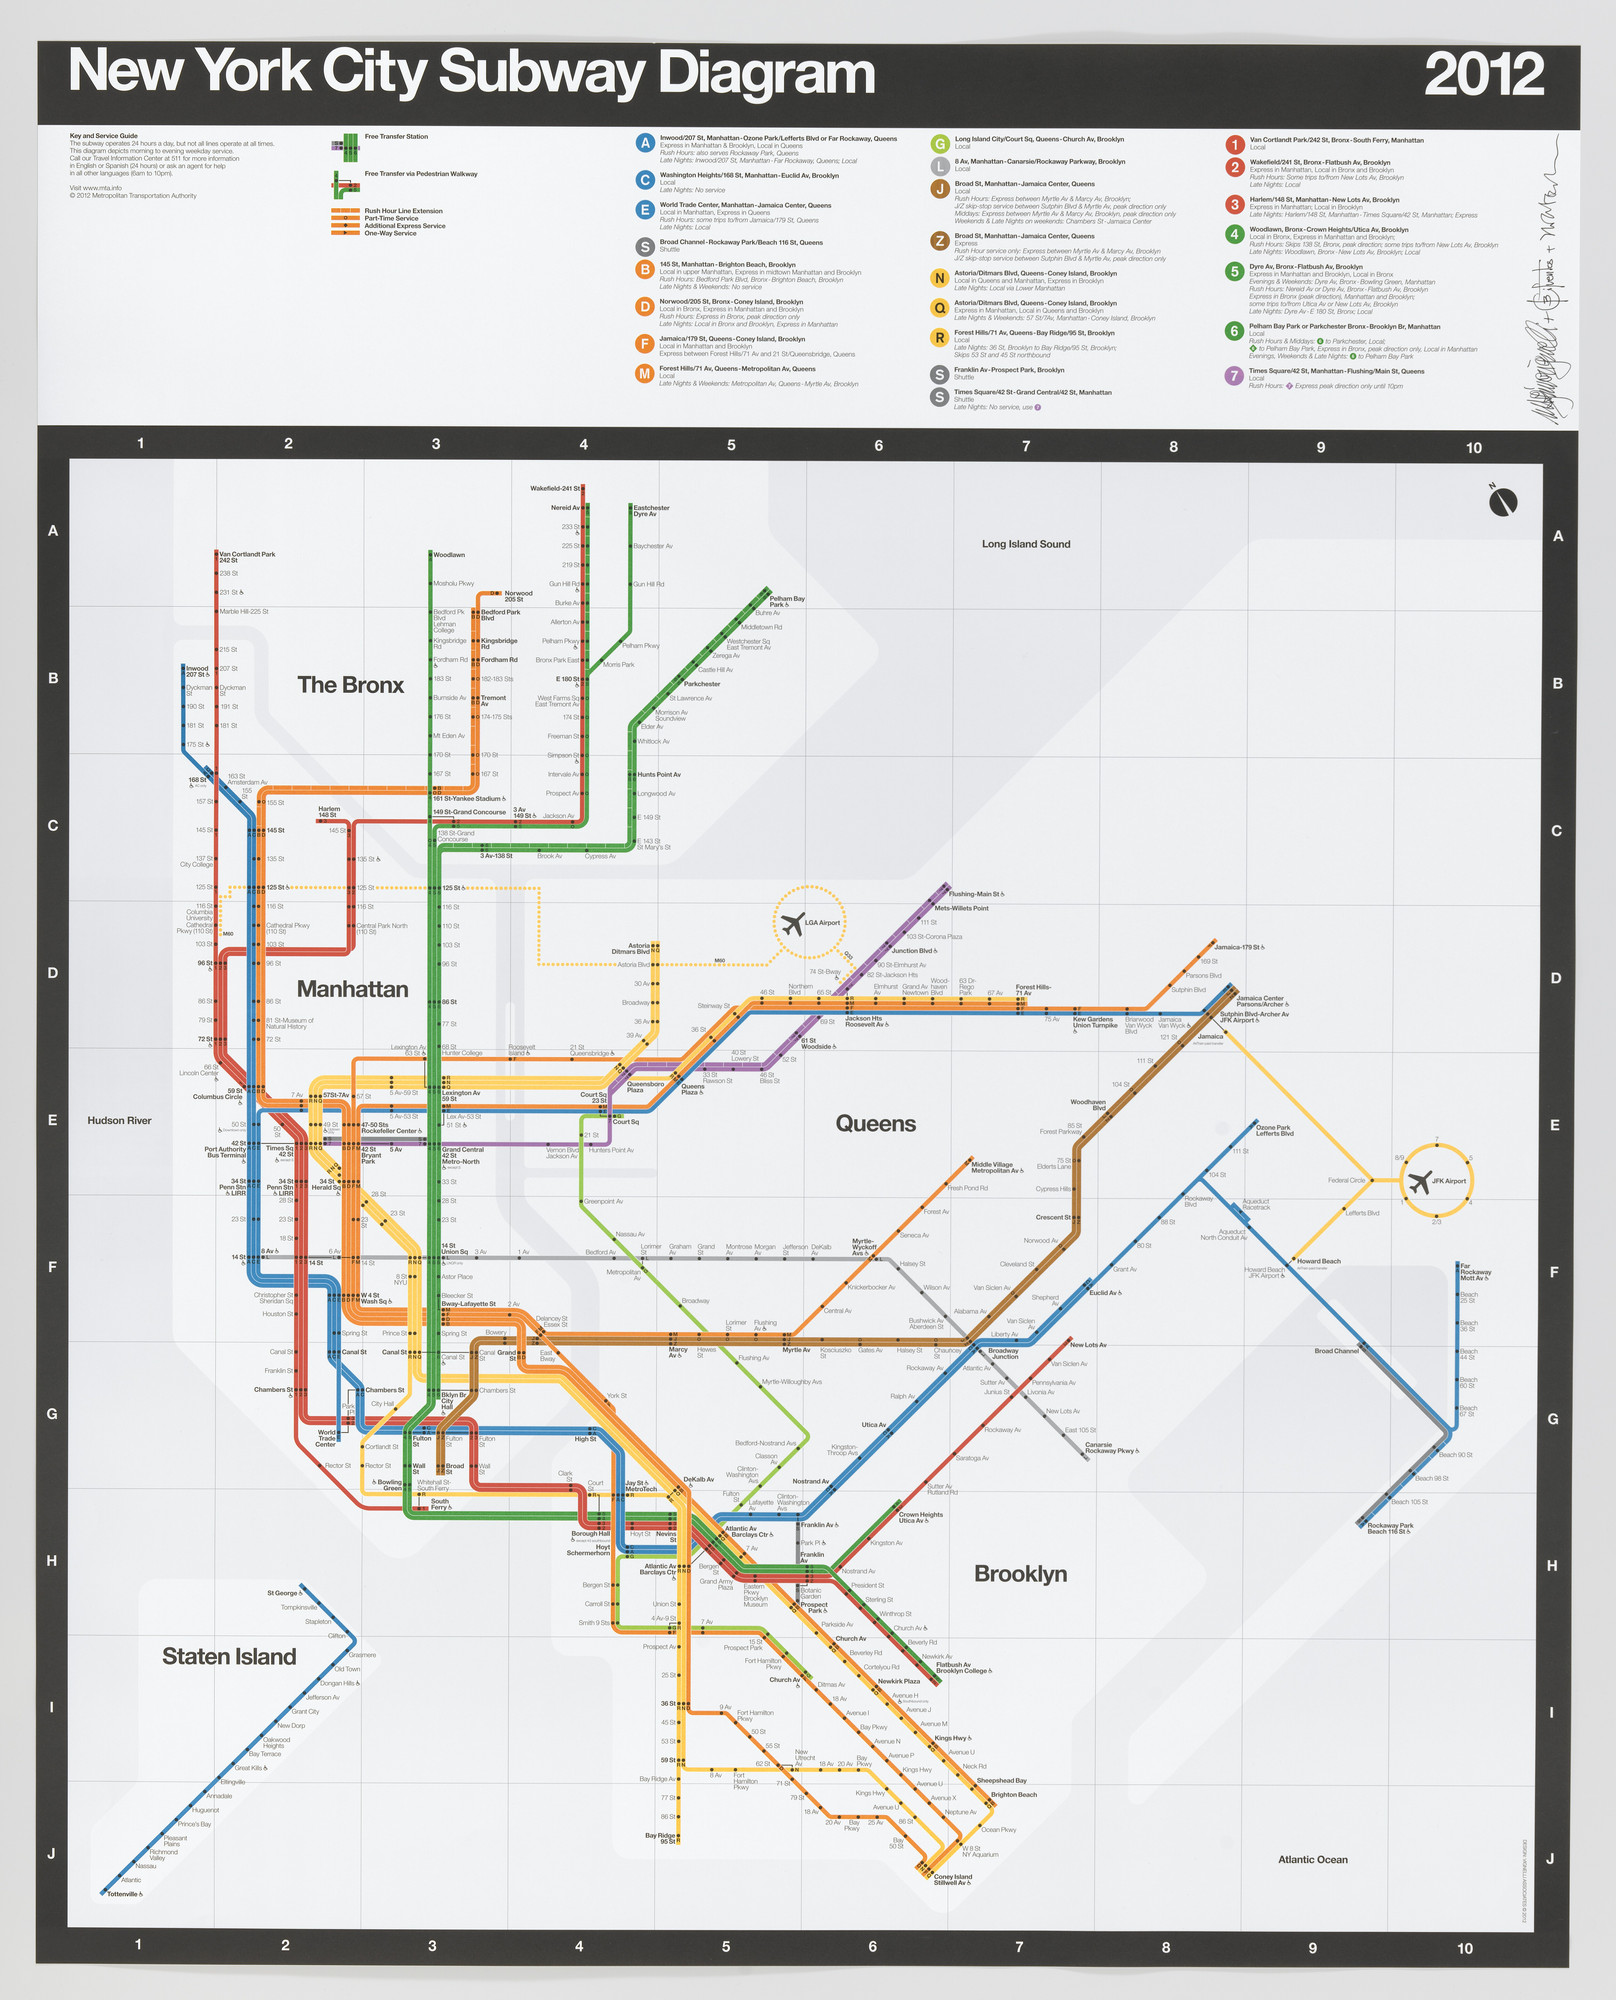 Massimo Vignelli, Beatriz Cifuentes, Yoshiki Waterhouse. New York City Subway Diagram. 2012